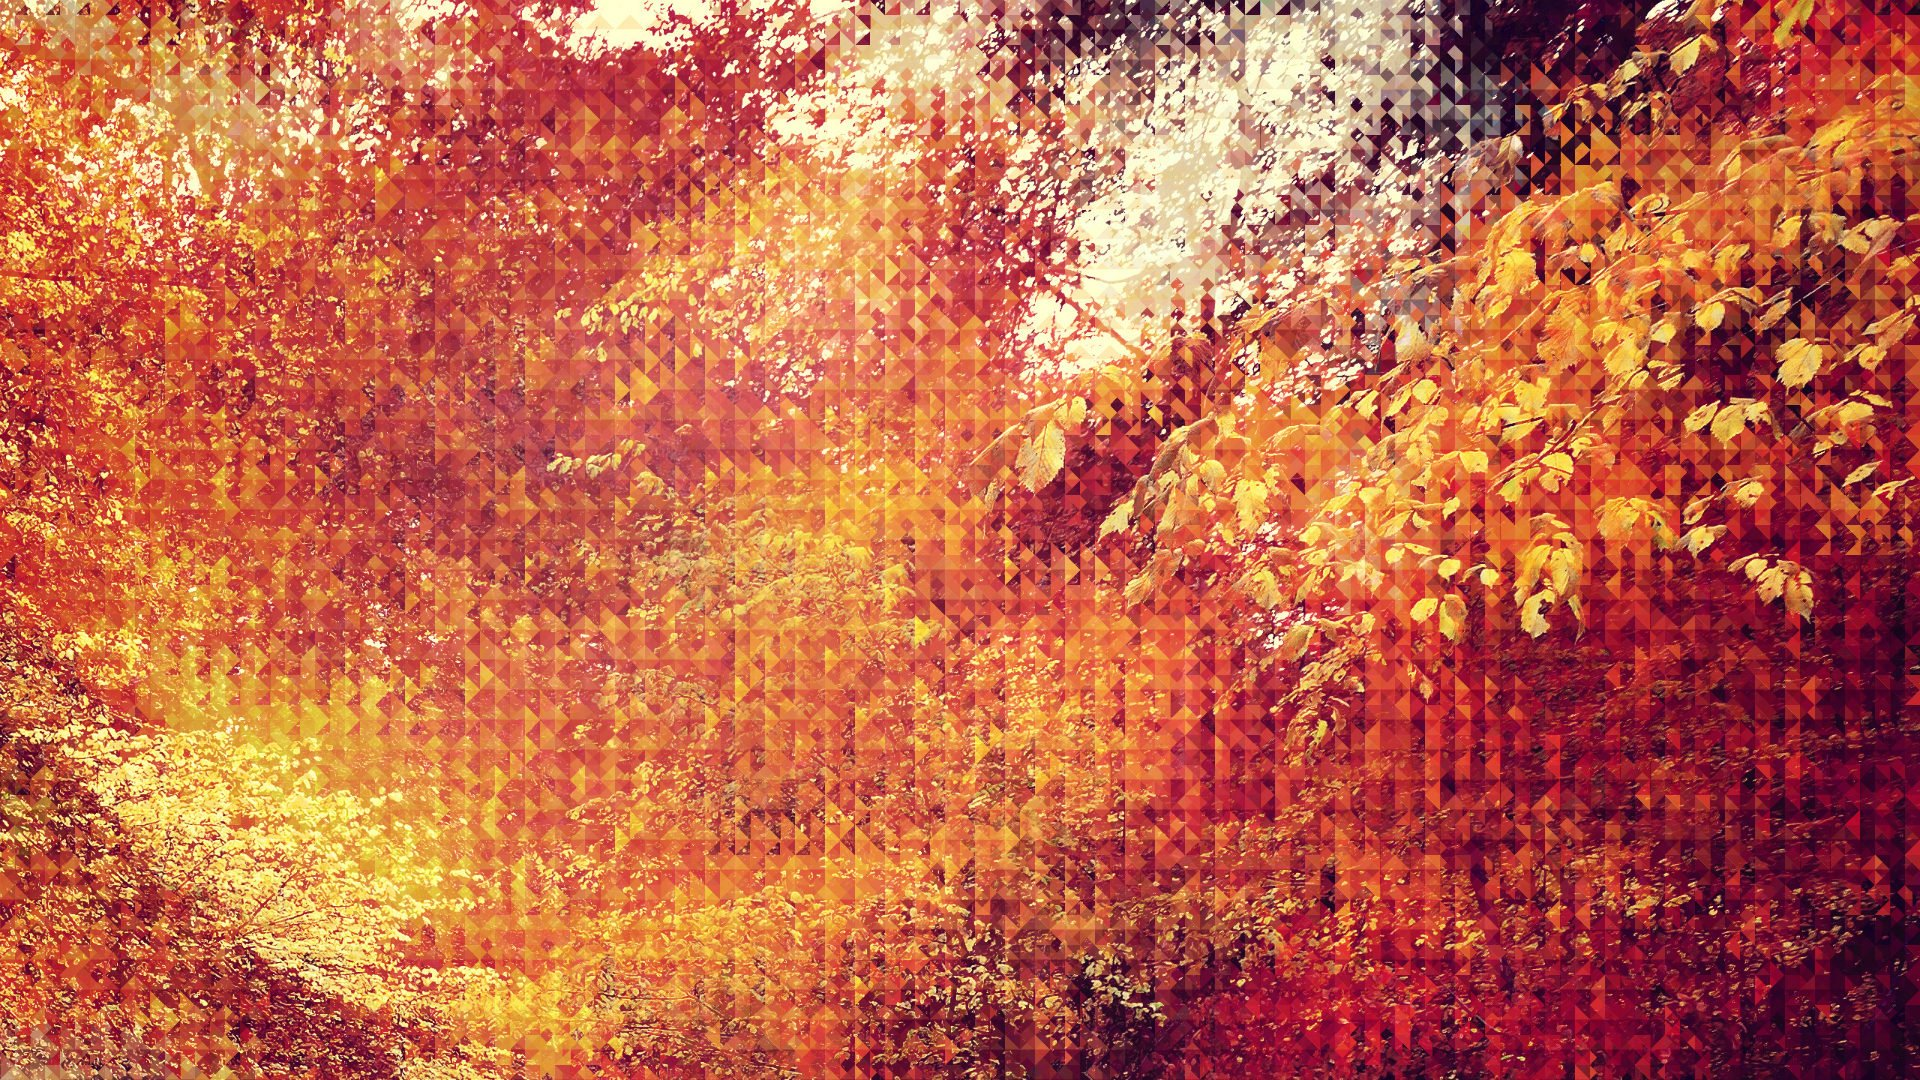 Fall Leaf Wallpaper For Mobile Android World Android World Update 20 Autumn Wallpapers